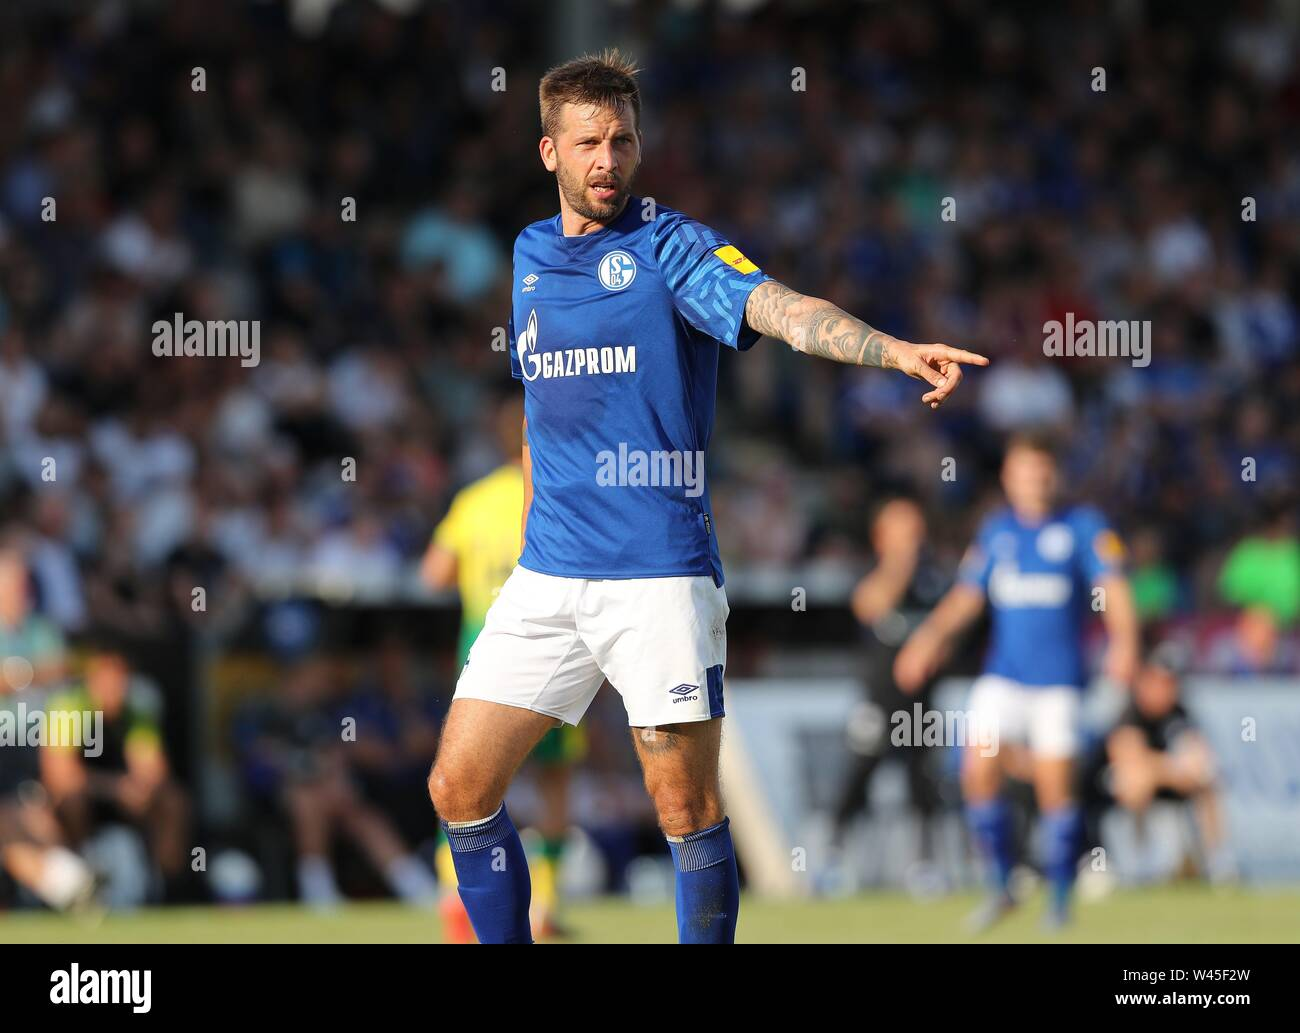 Lotte, Deutschland. 19th July, 2019. firo: 19.07.2019, football, 1.Bundesliga, season 2019/2020, friendly match, FC Schalke 04 - Norwich City BURGSTALLER, Schalke, gesture | usage worldwide Credit: dpa/Alamy Live News - Stock Image